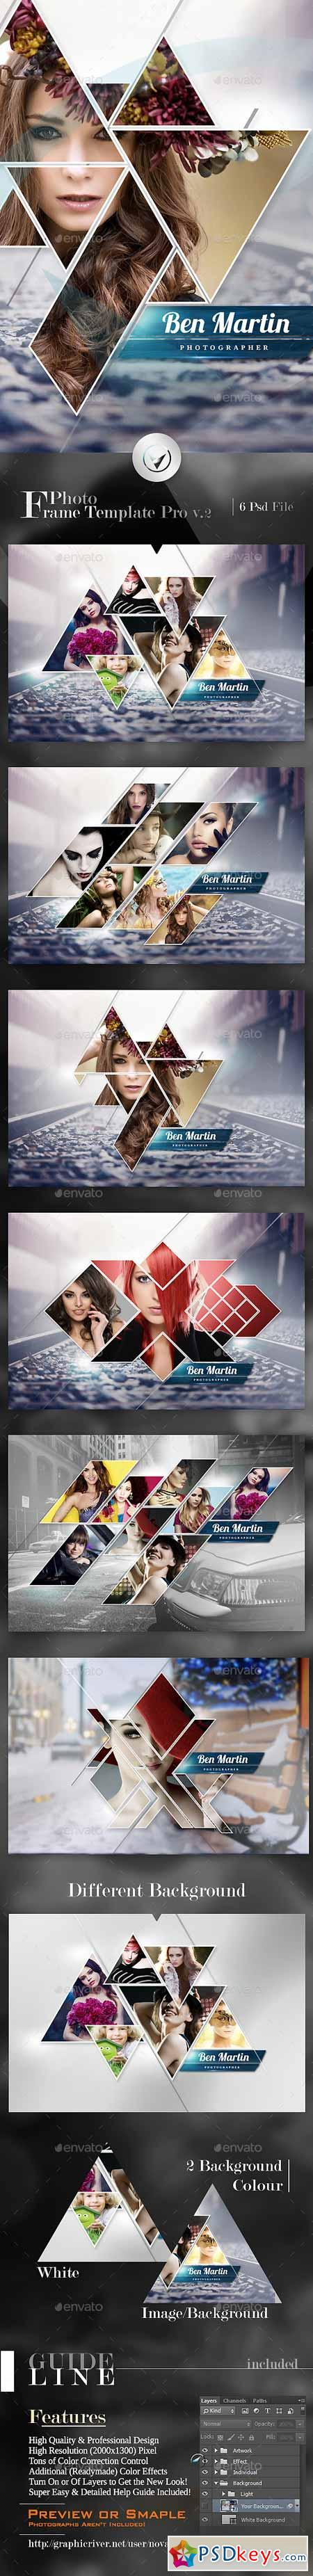 Photo Frame Template Pro v.2 13207696